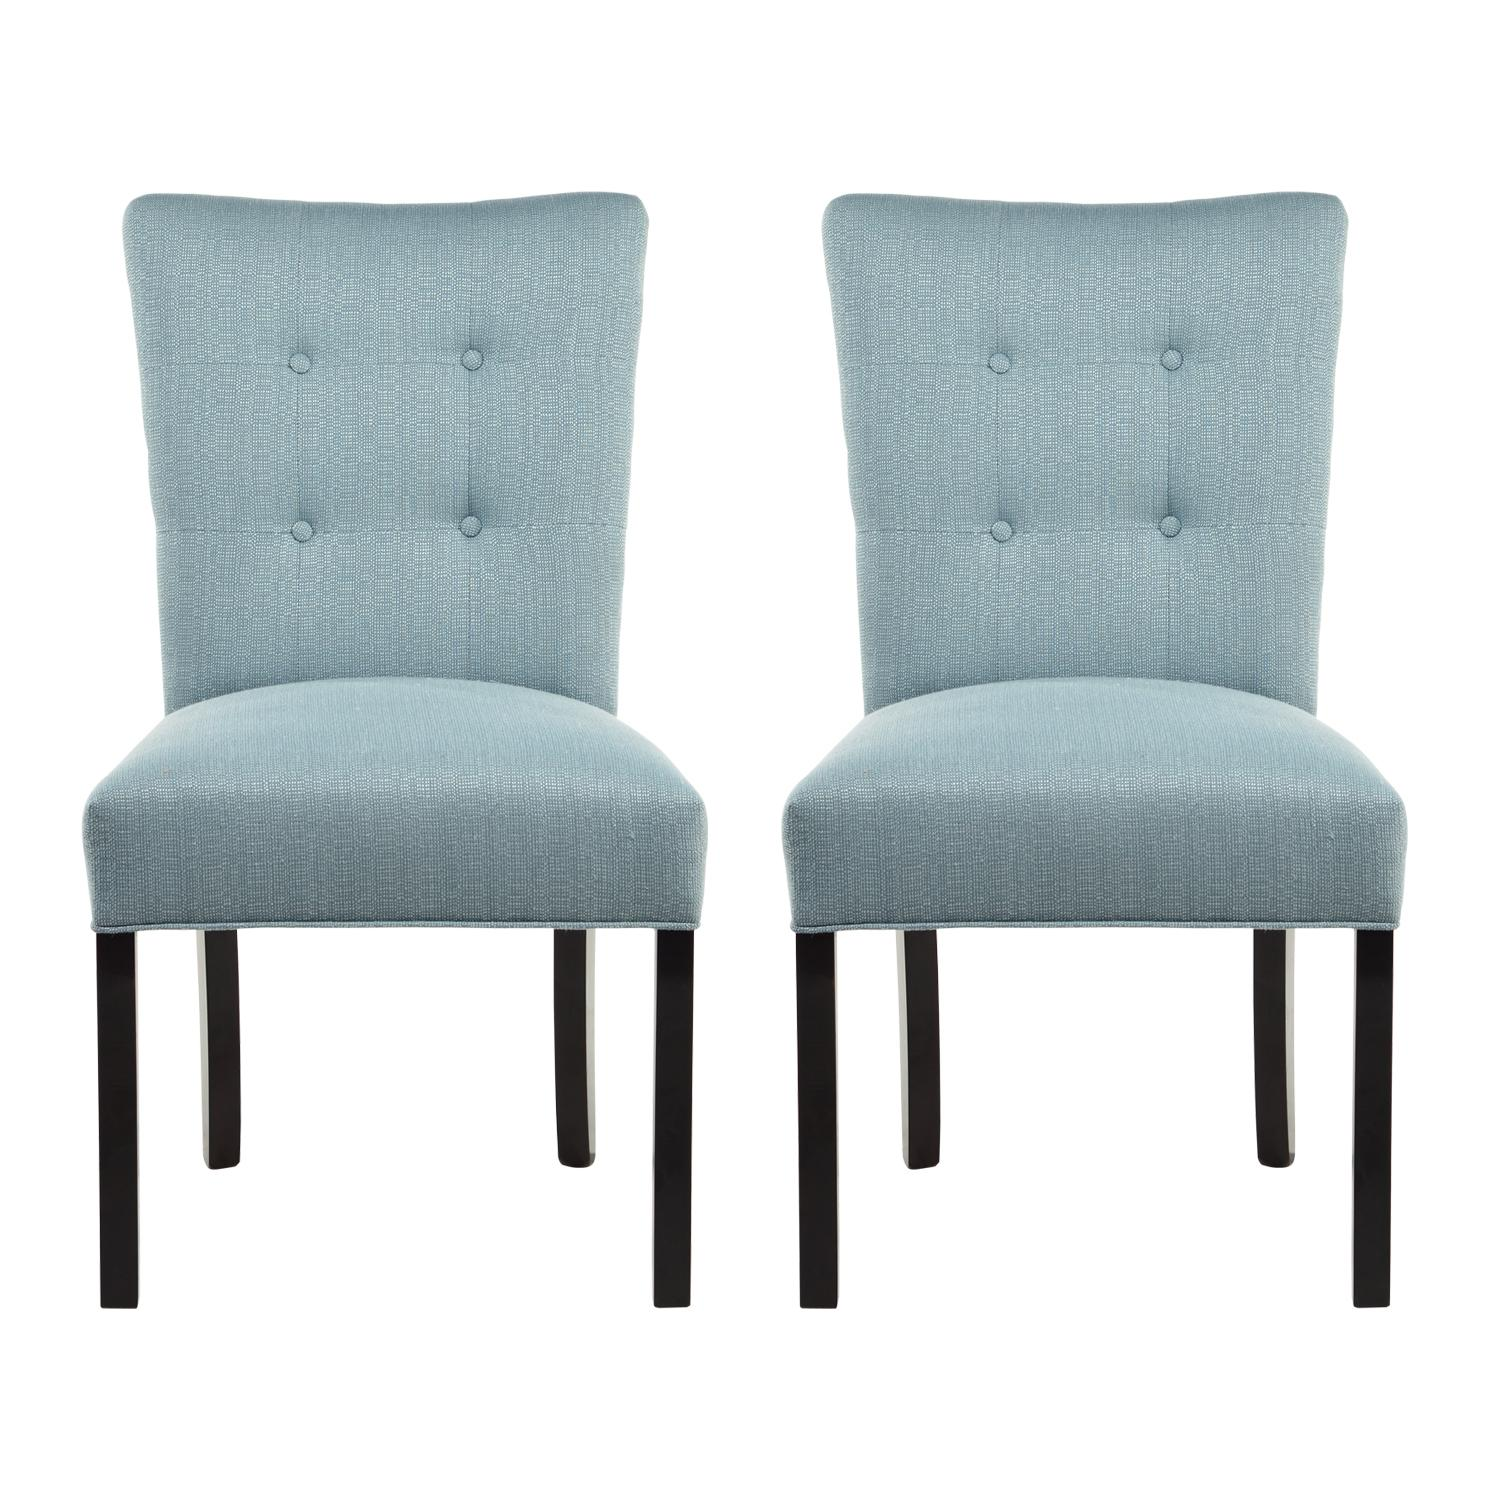 Button Tufted Fanback Dining Chairs. View Larger